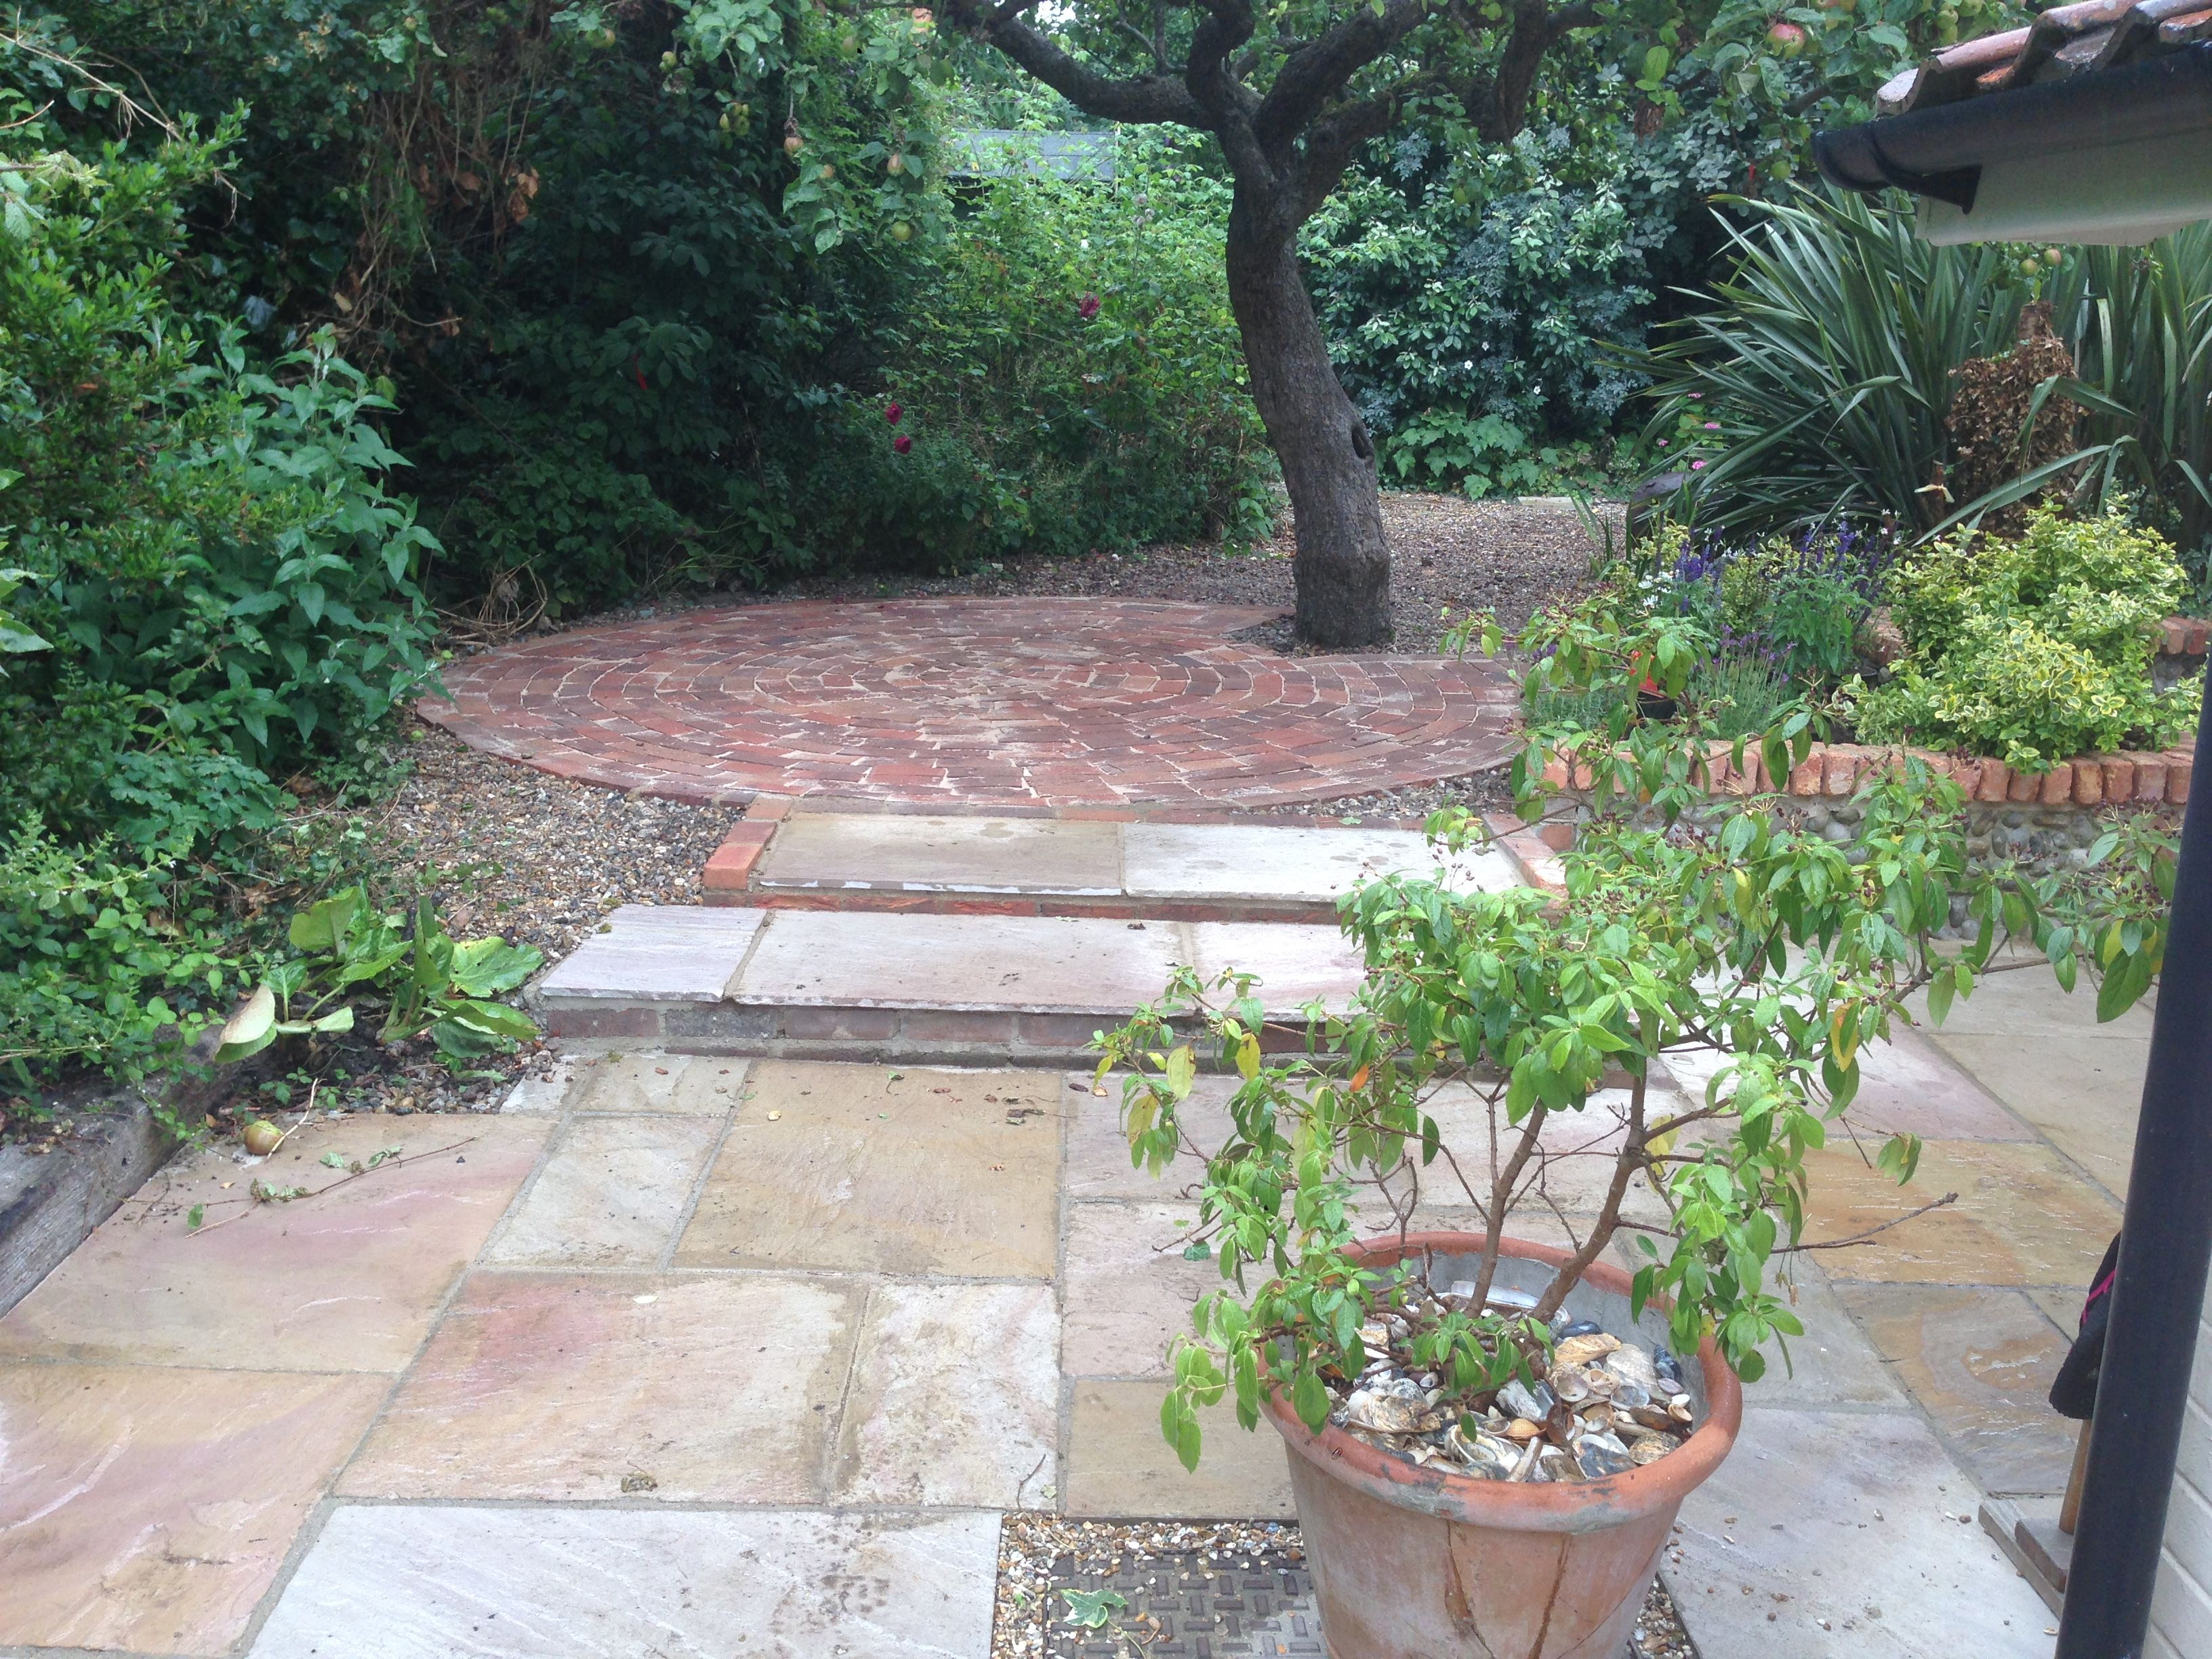 Sandstone Paving Steps And A Brick Patio Circle Under The